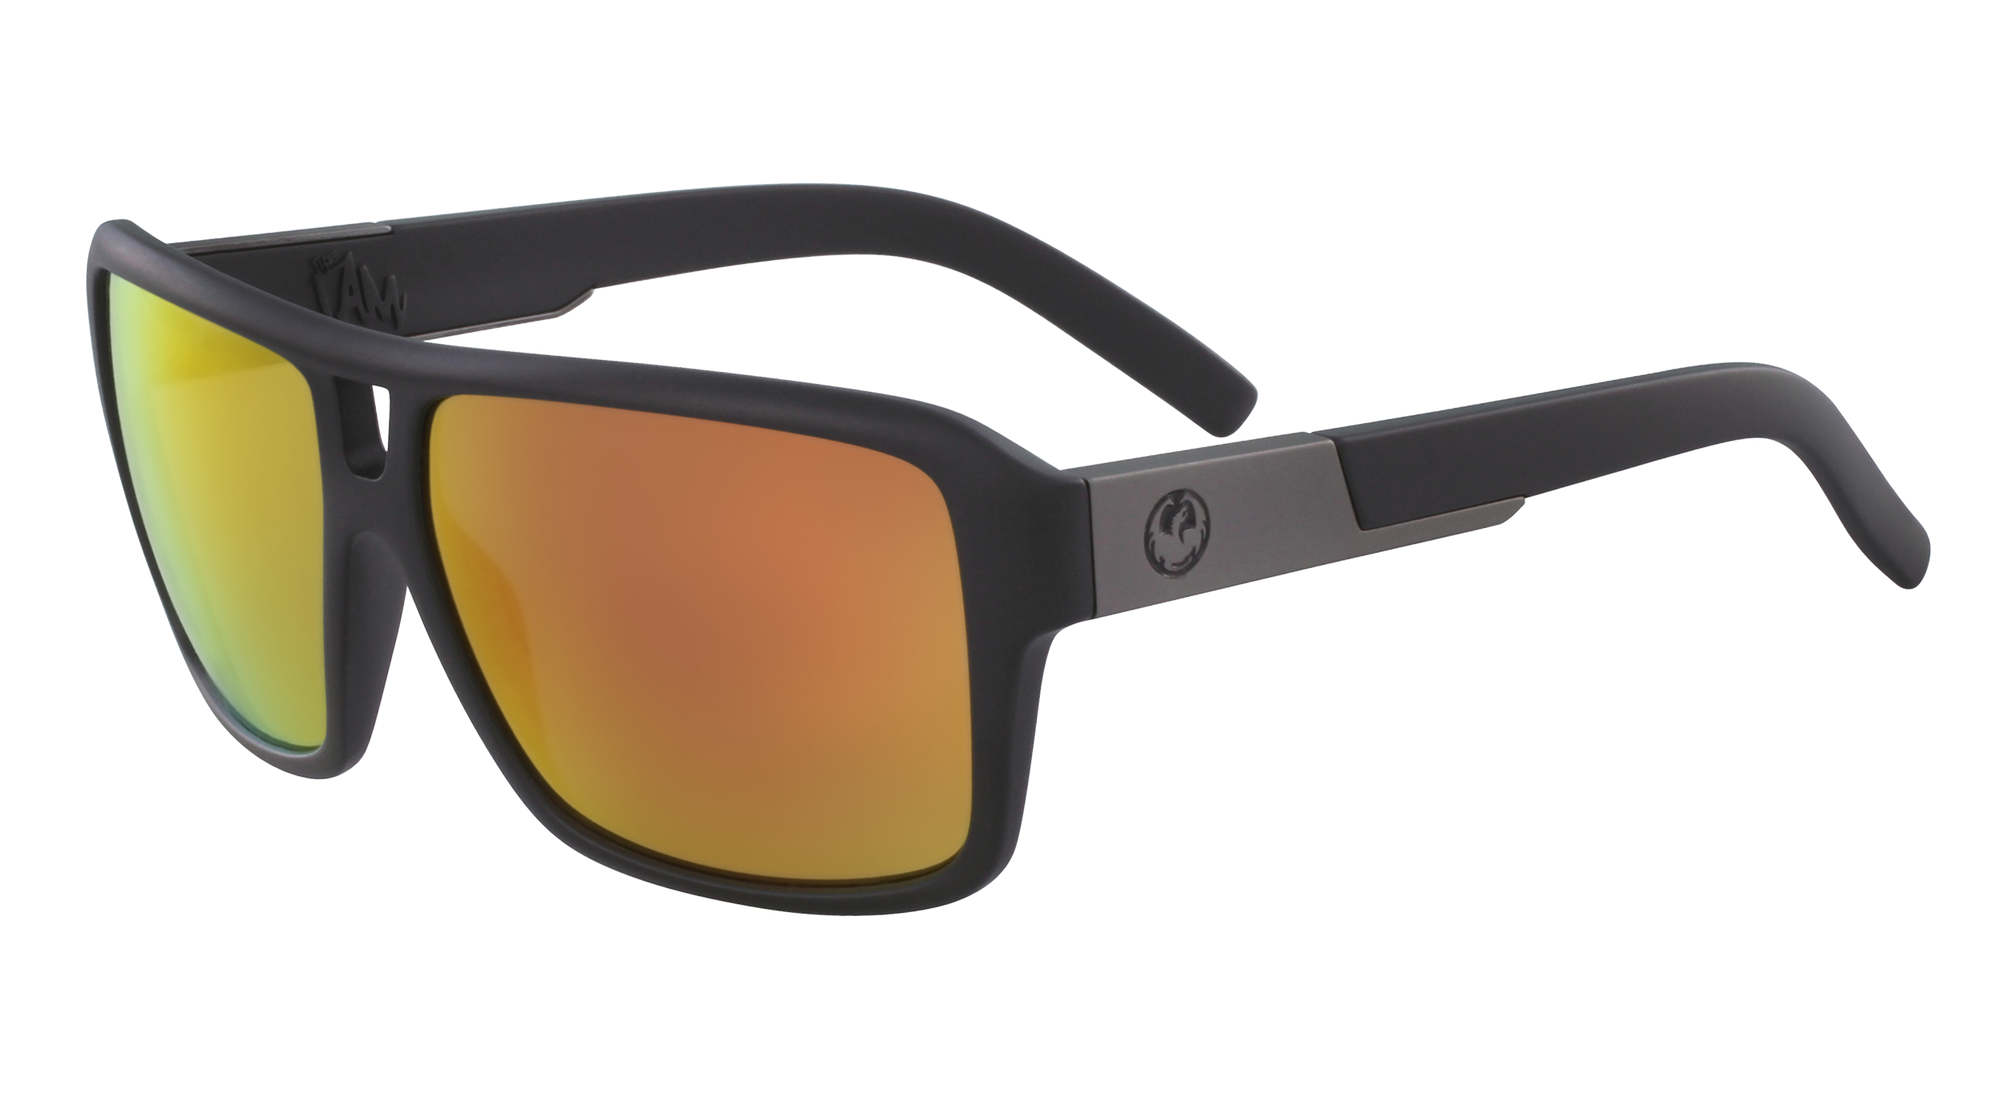 Dragon The Jam Matte Black/Red Ionised - Board Store Dragon AllianceSunglasses